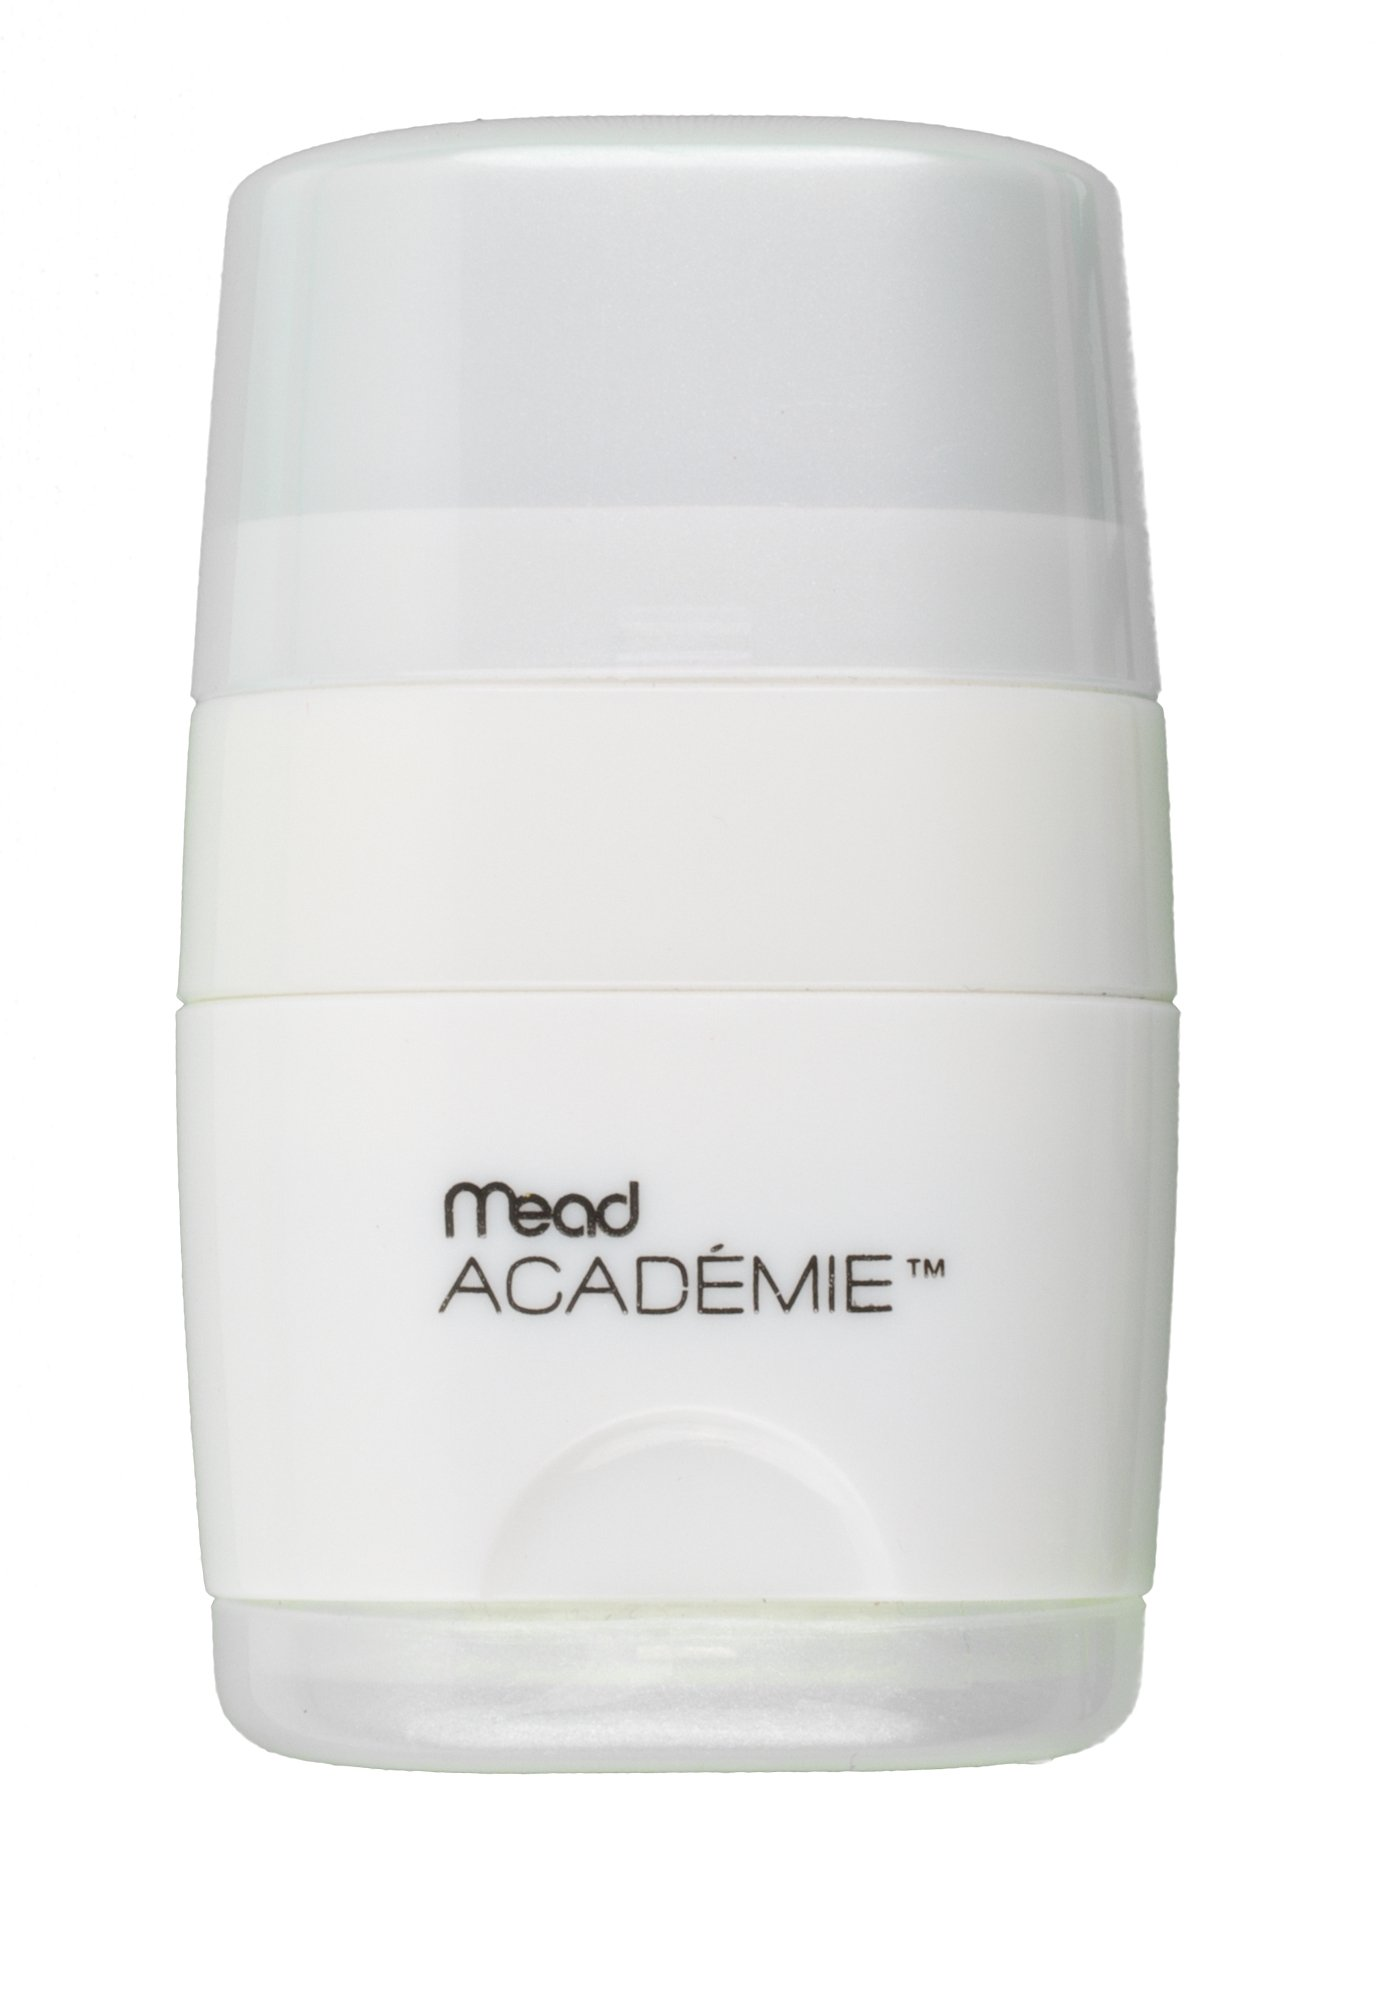 Mead Academie 2-In-1 Pencil Sharpener and Eraser, 2.25 H x 1.25 W Inches, White (98032) by Mead (Image #2)